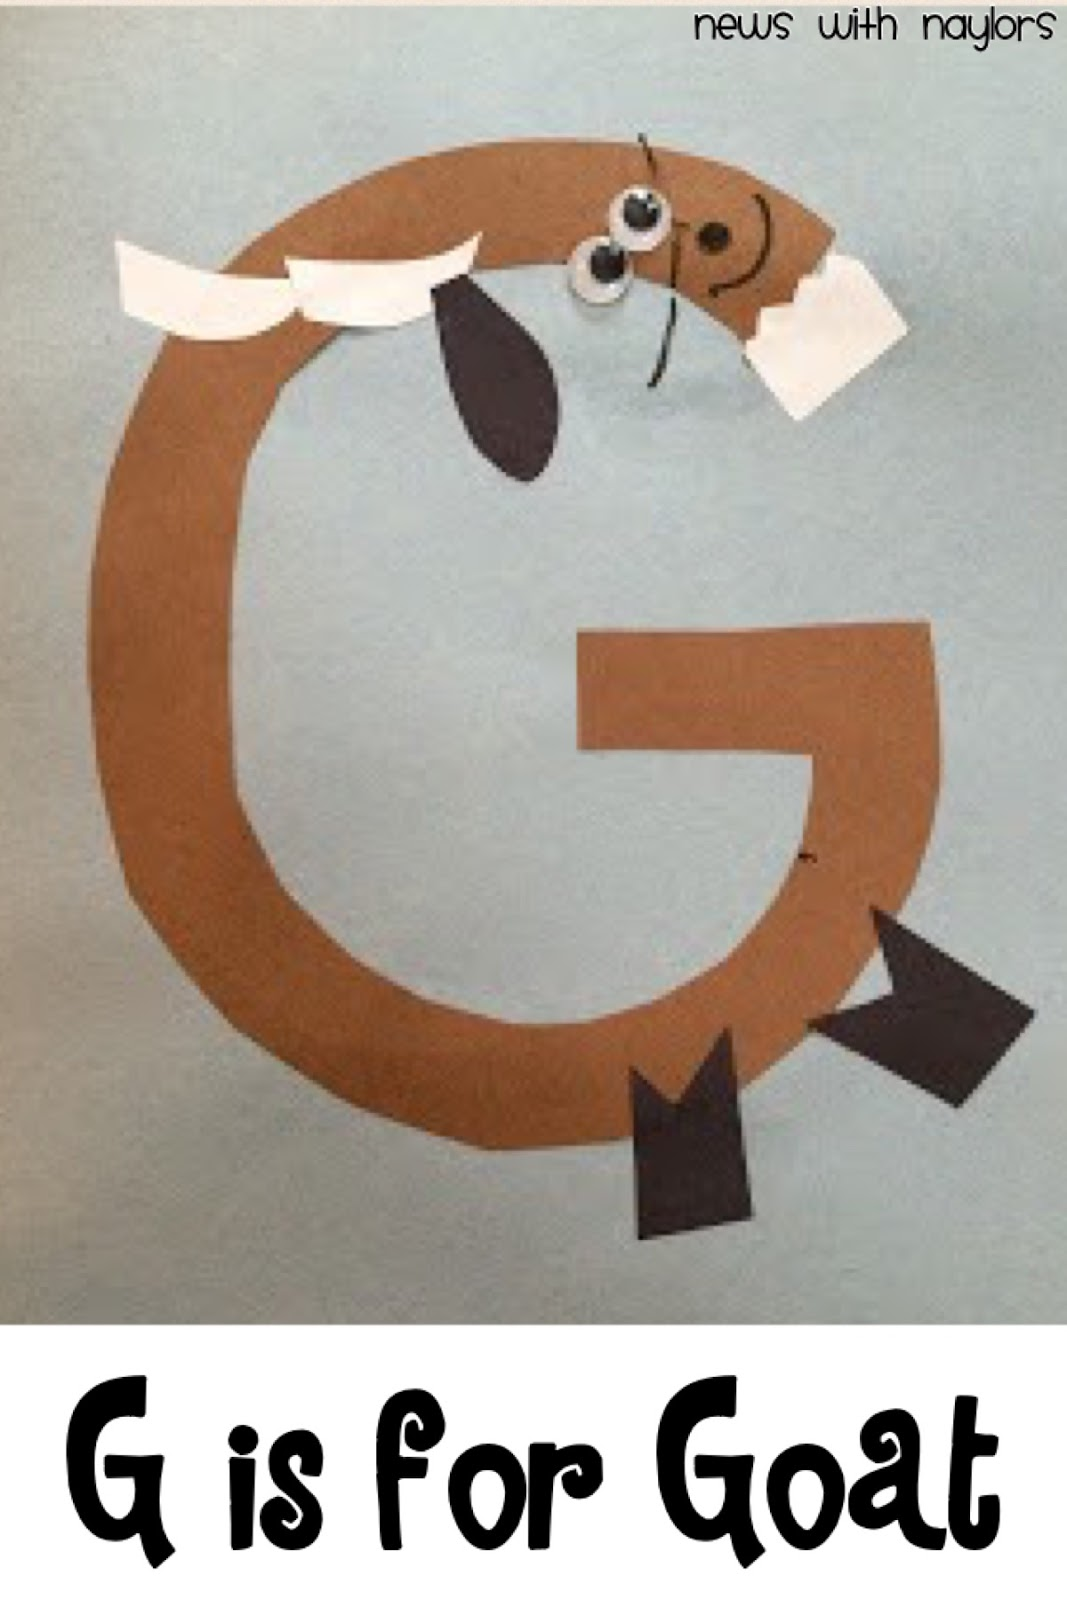 News with Naylors: Letter G: G is for Goat, Billy Goat Gruff